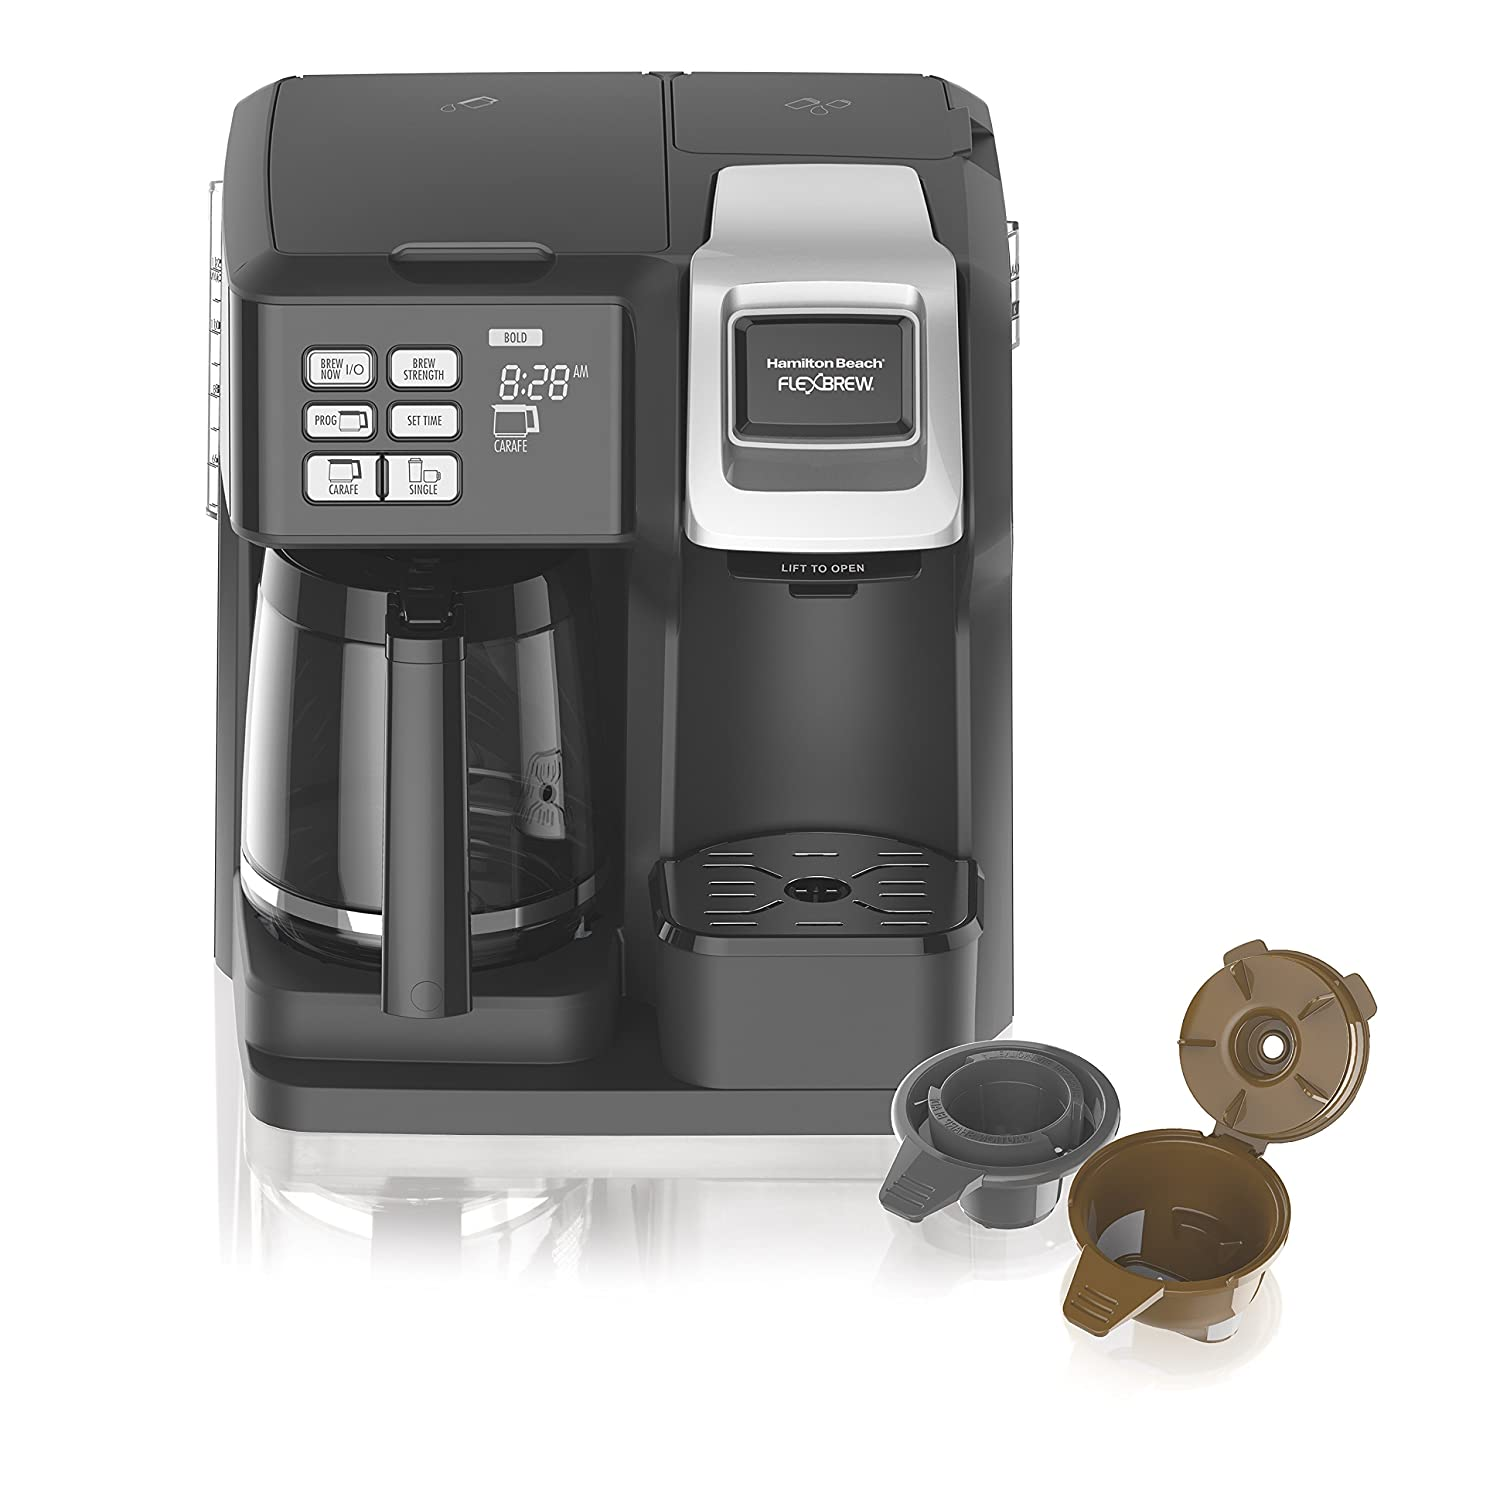 Hamilton Beach (49976) Coffee Maker, Single Serve & Full Coffee Pot, Compatible with K-Cup Packs or Ground Coffee, Programmable, FlexBrew, Black